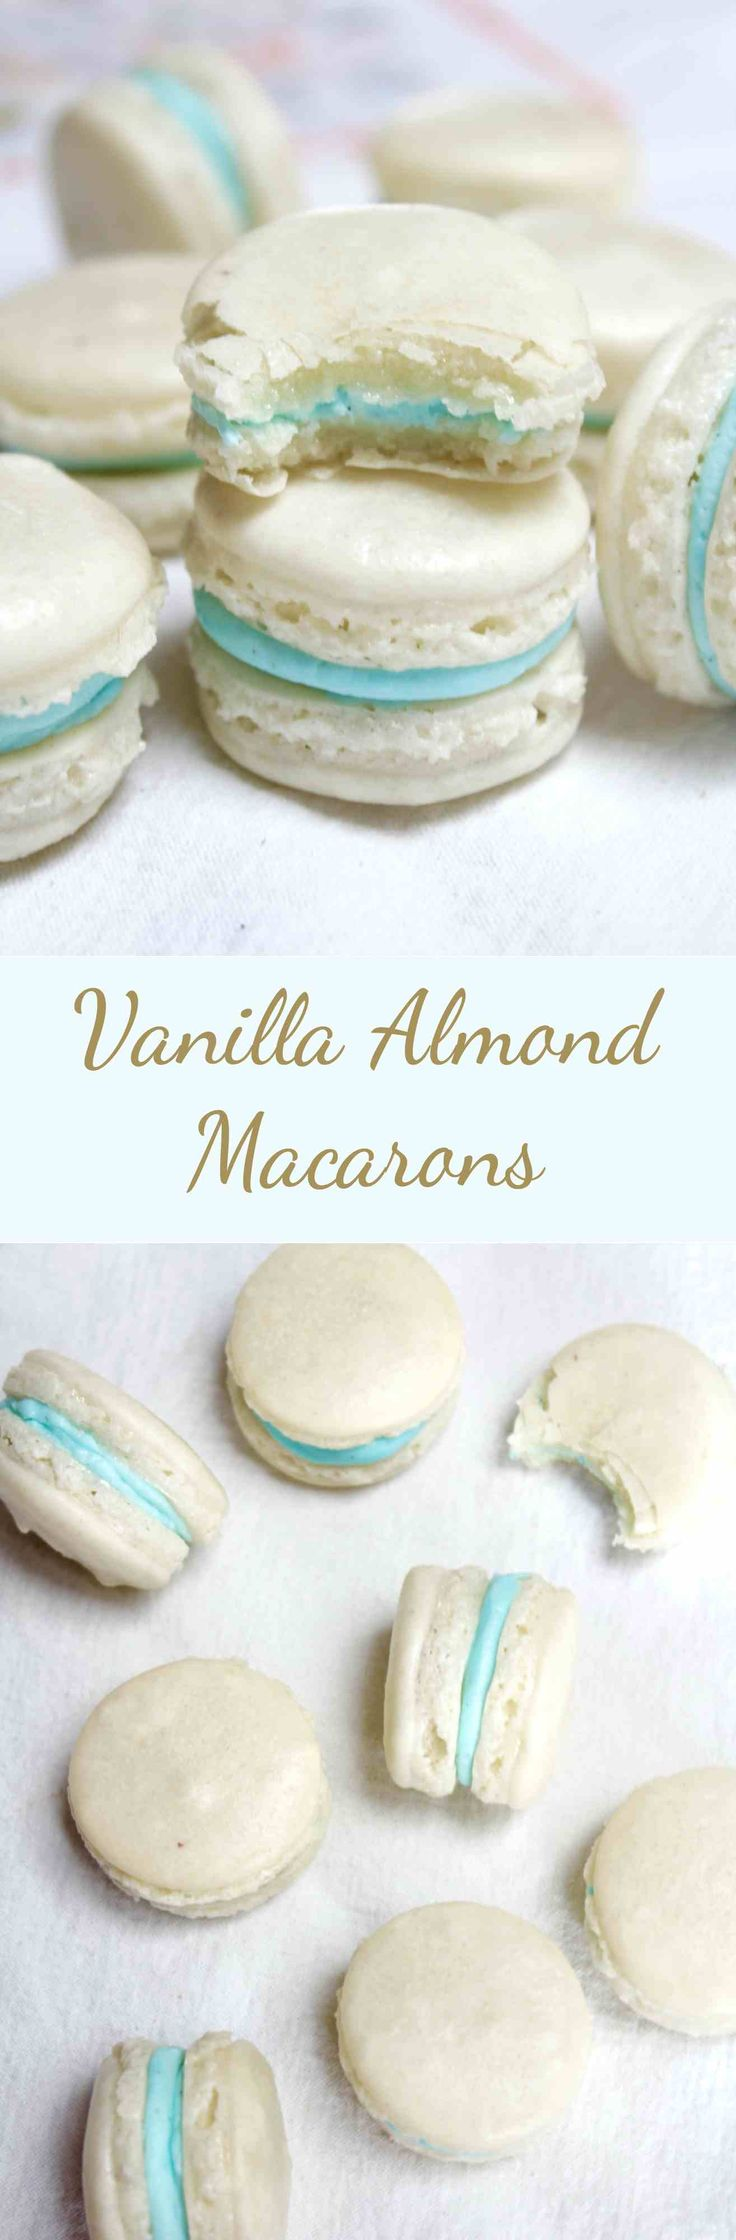 Crispy and sweet almond macarons filled with a vanilla buttercream. An easy recipe for the classic french dessert!